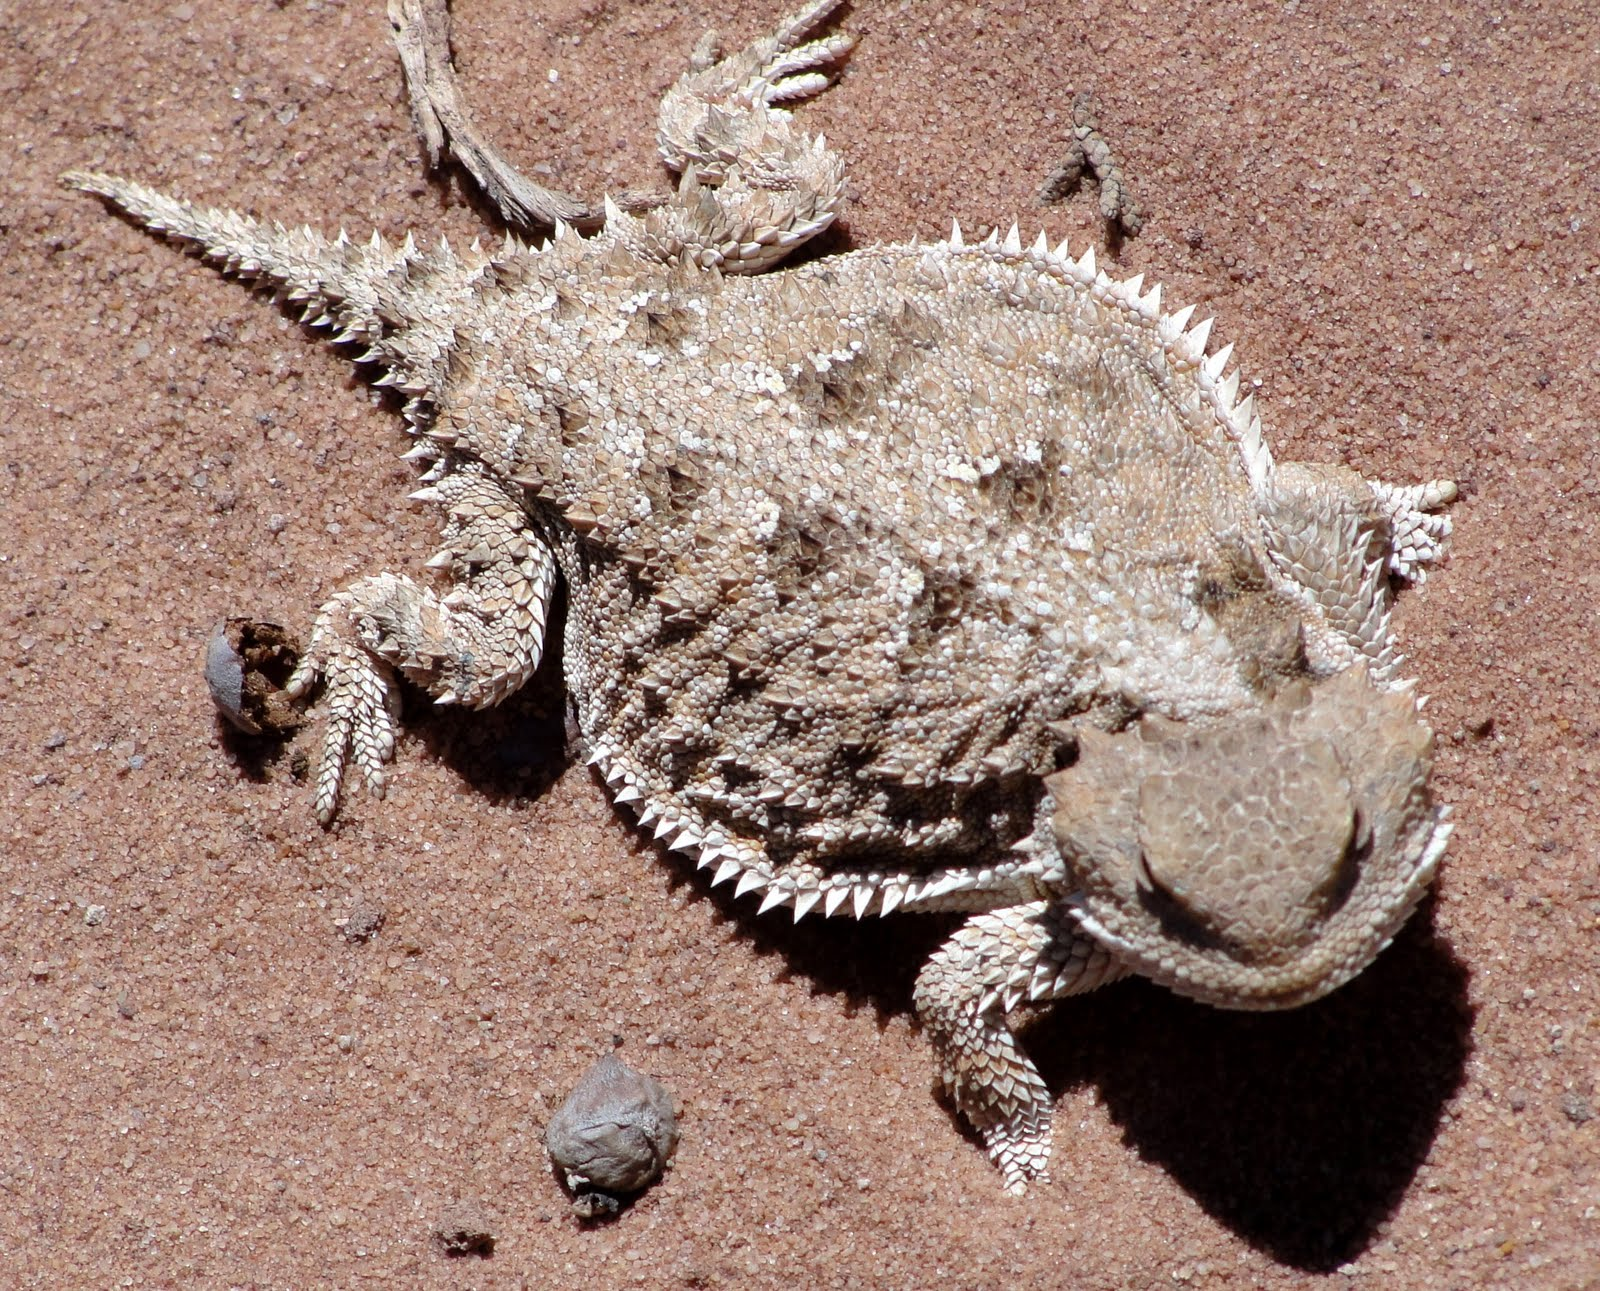 Janie and Steve, Utah Trails: Horny Toads and Winged Docks